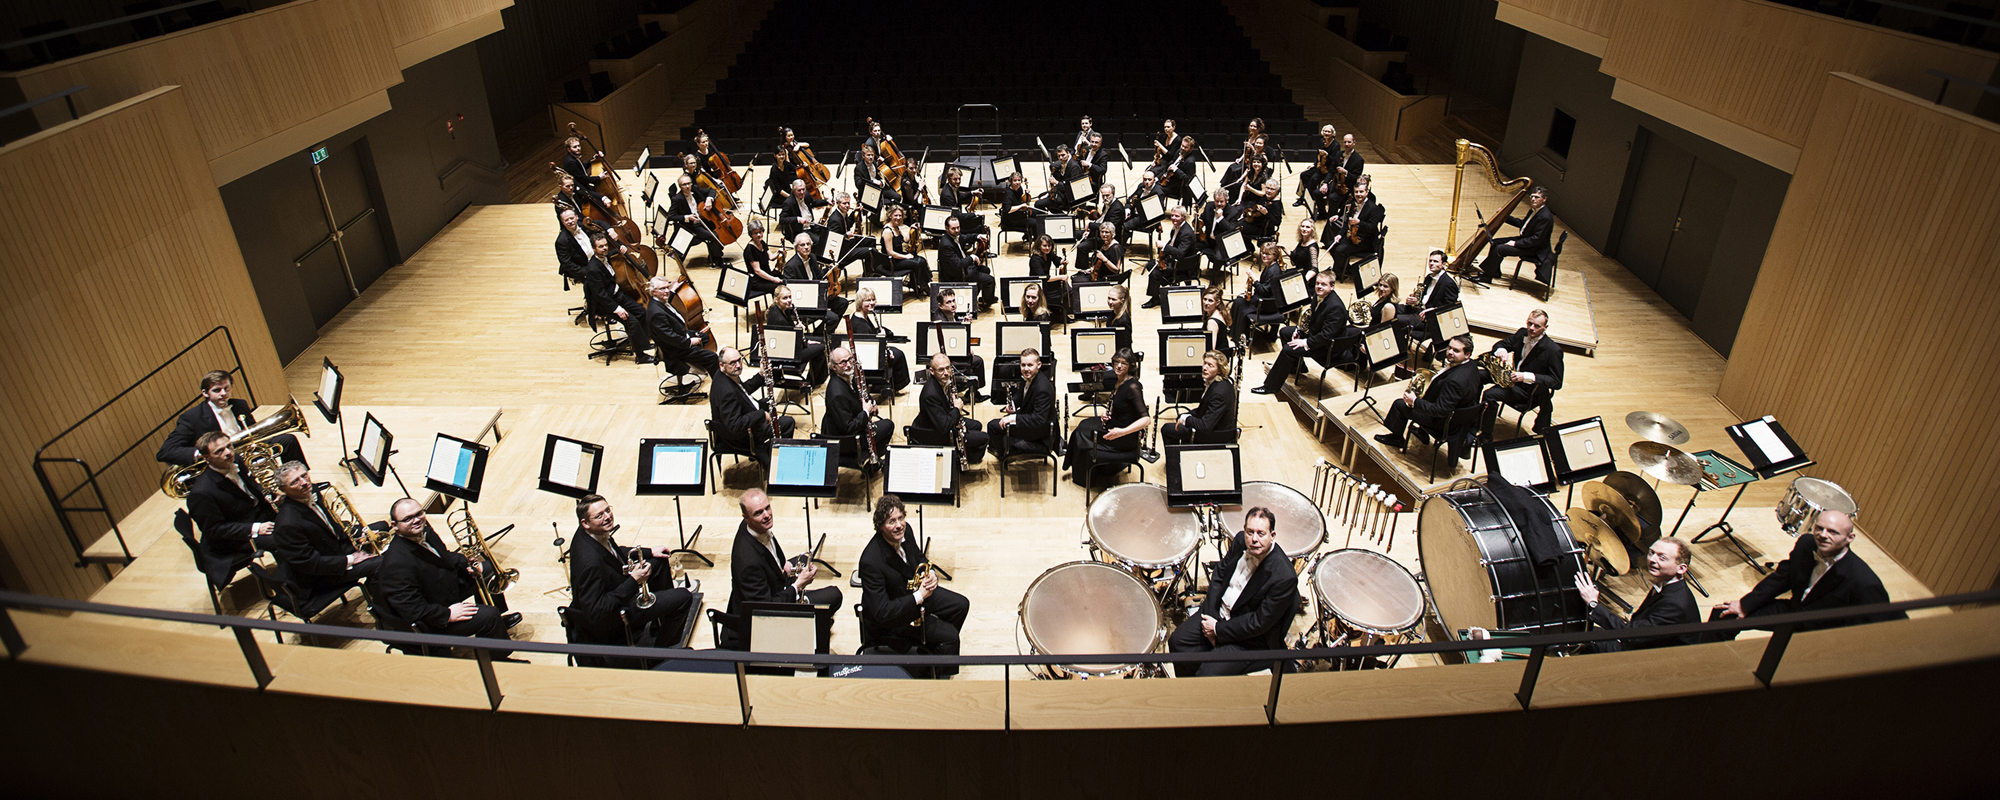 symphonic-residencies_web_sliderjpg - 0